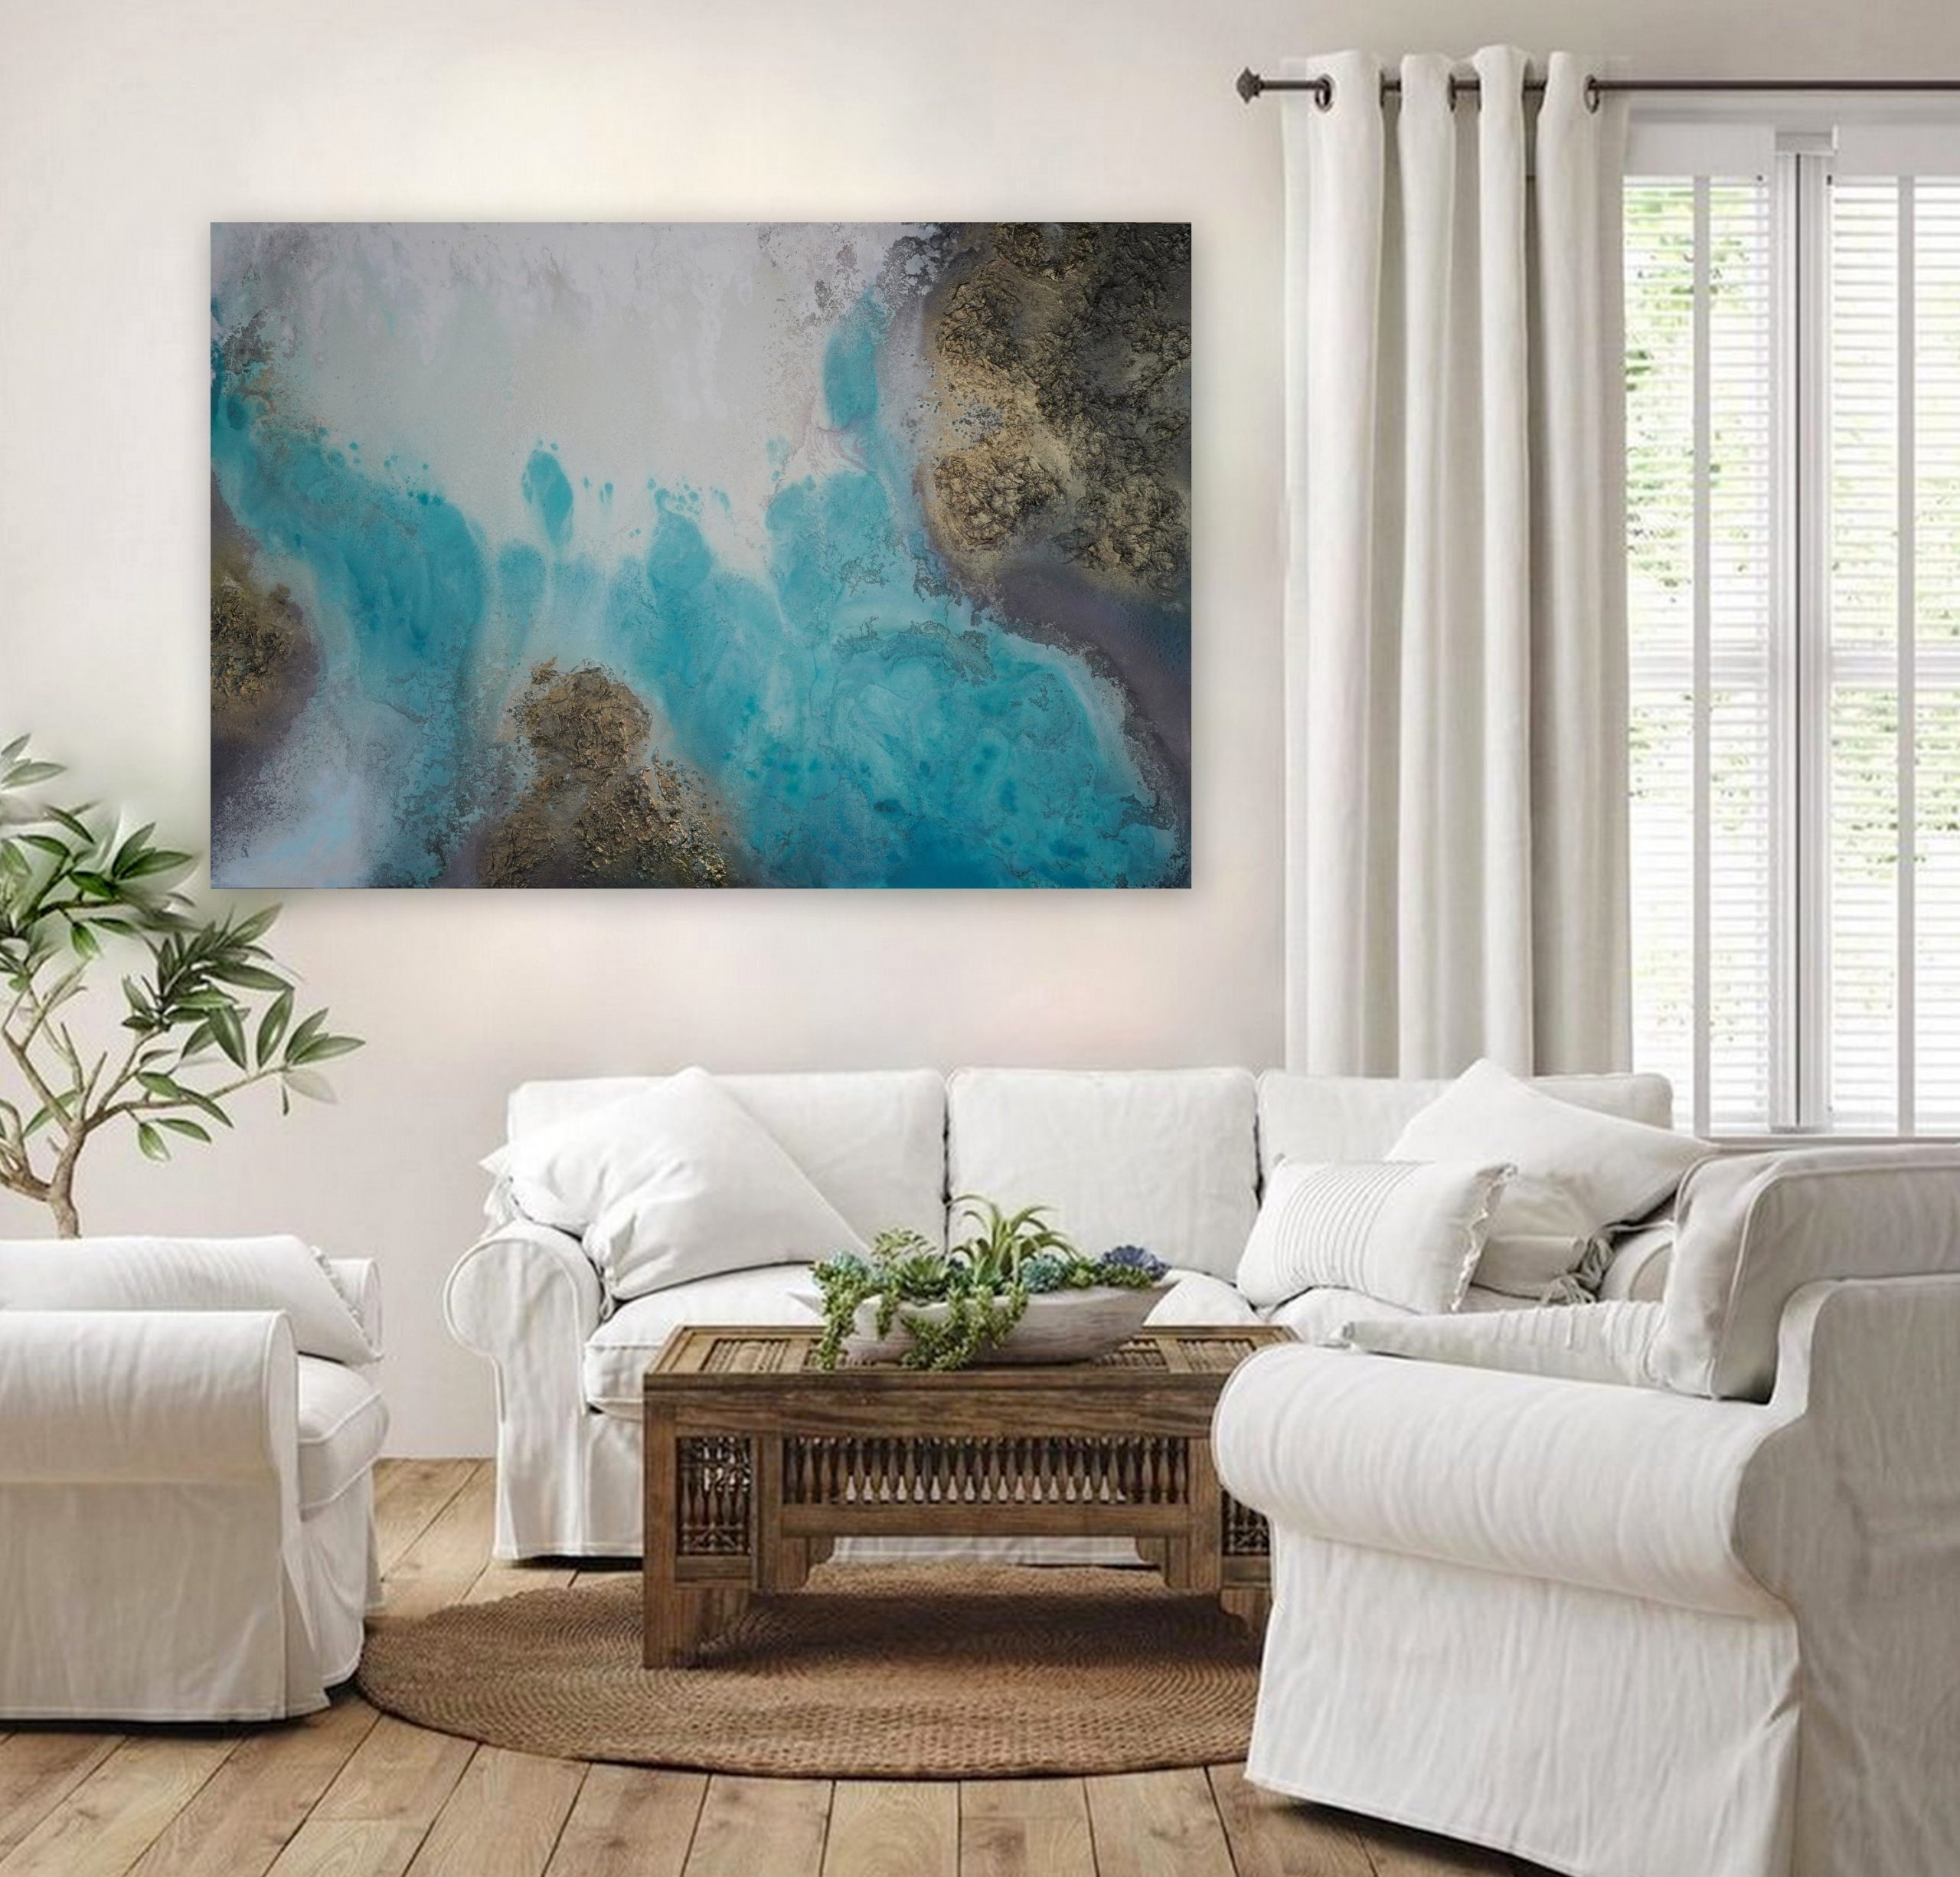 Ocean Art For Sale By Petra Meikle De Vlas1